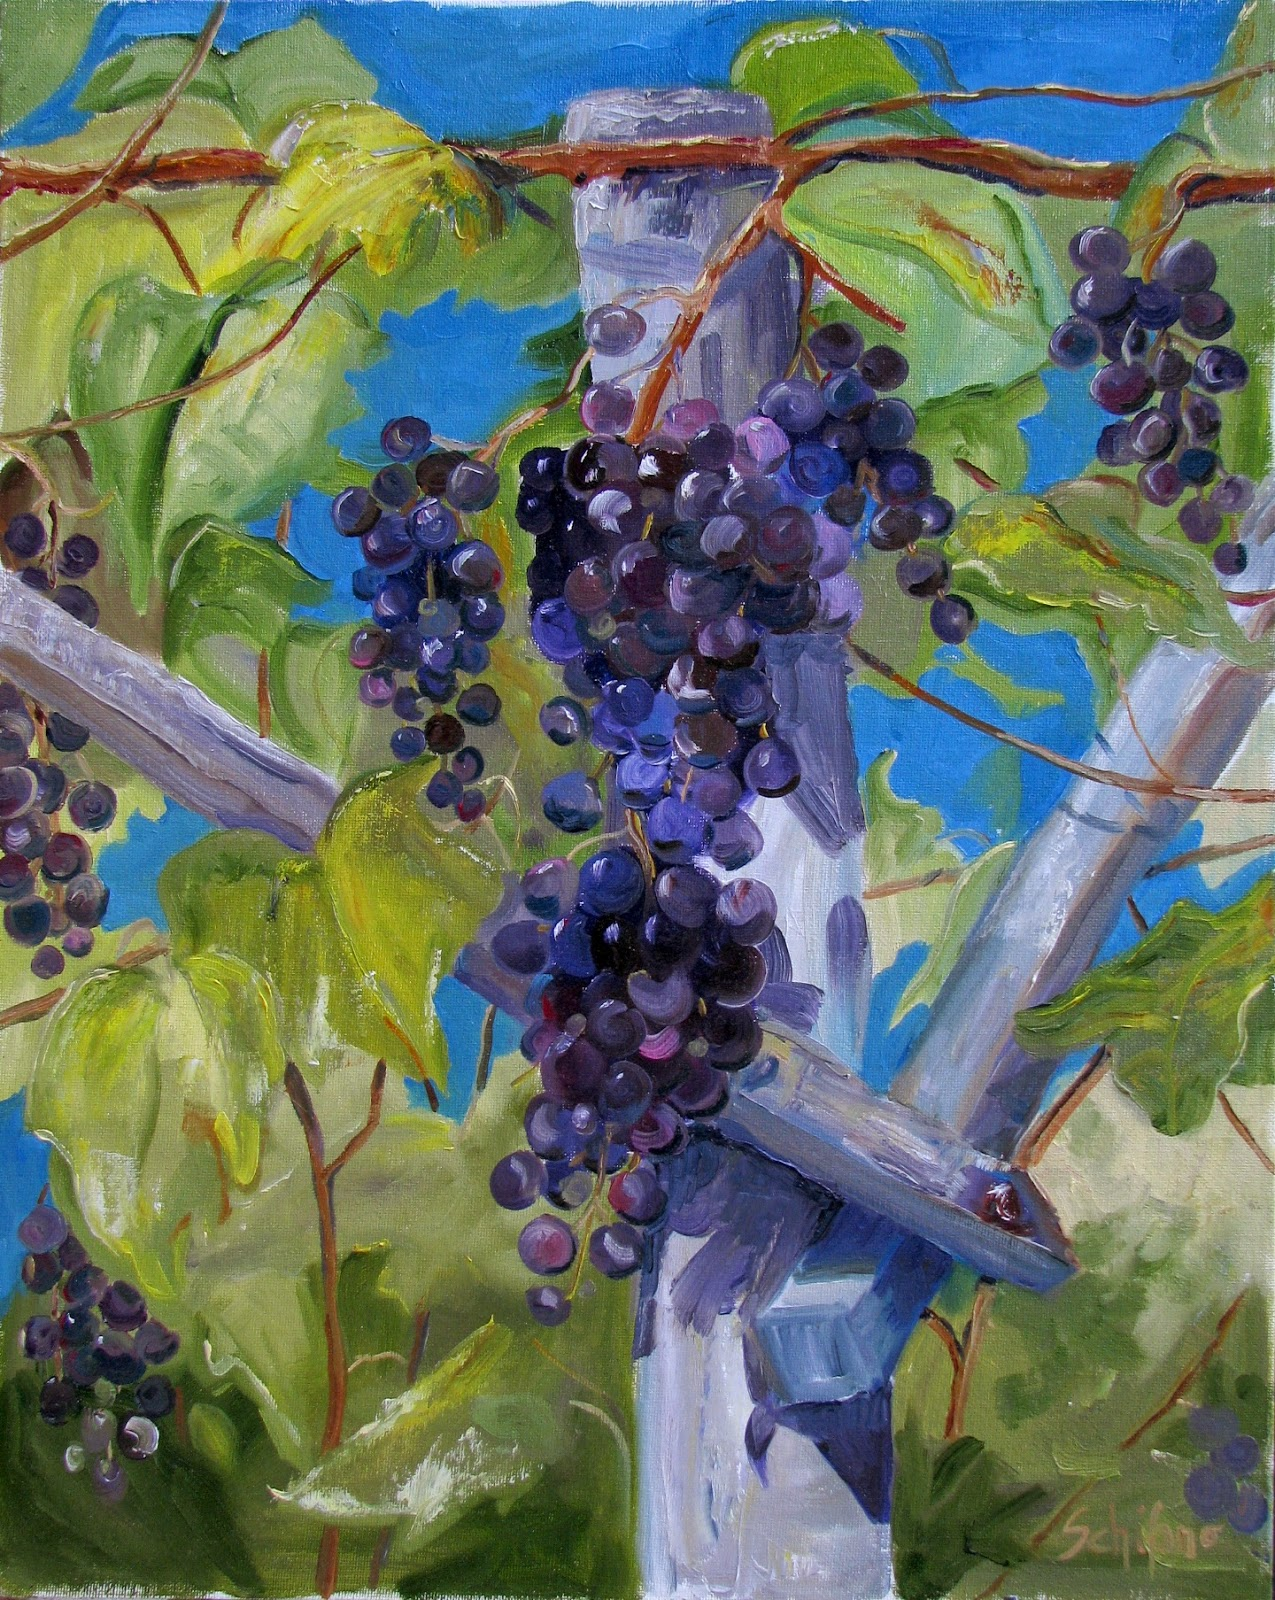 Kath Schifano, grapes, vineyard, oil paint grapes